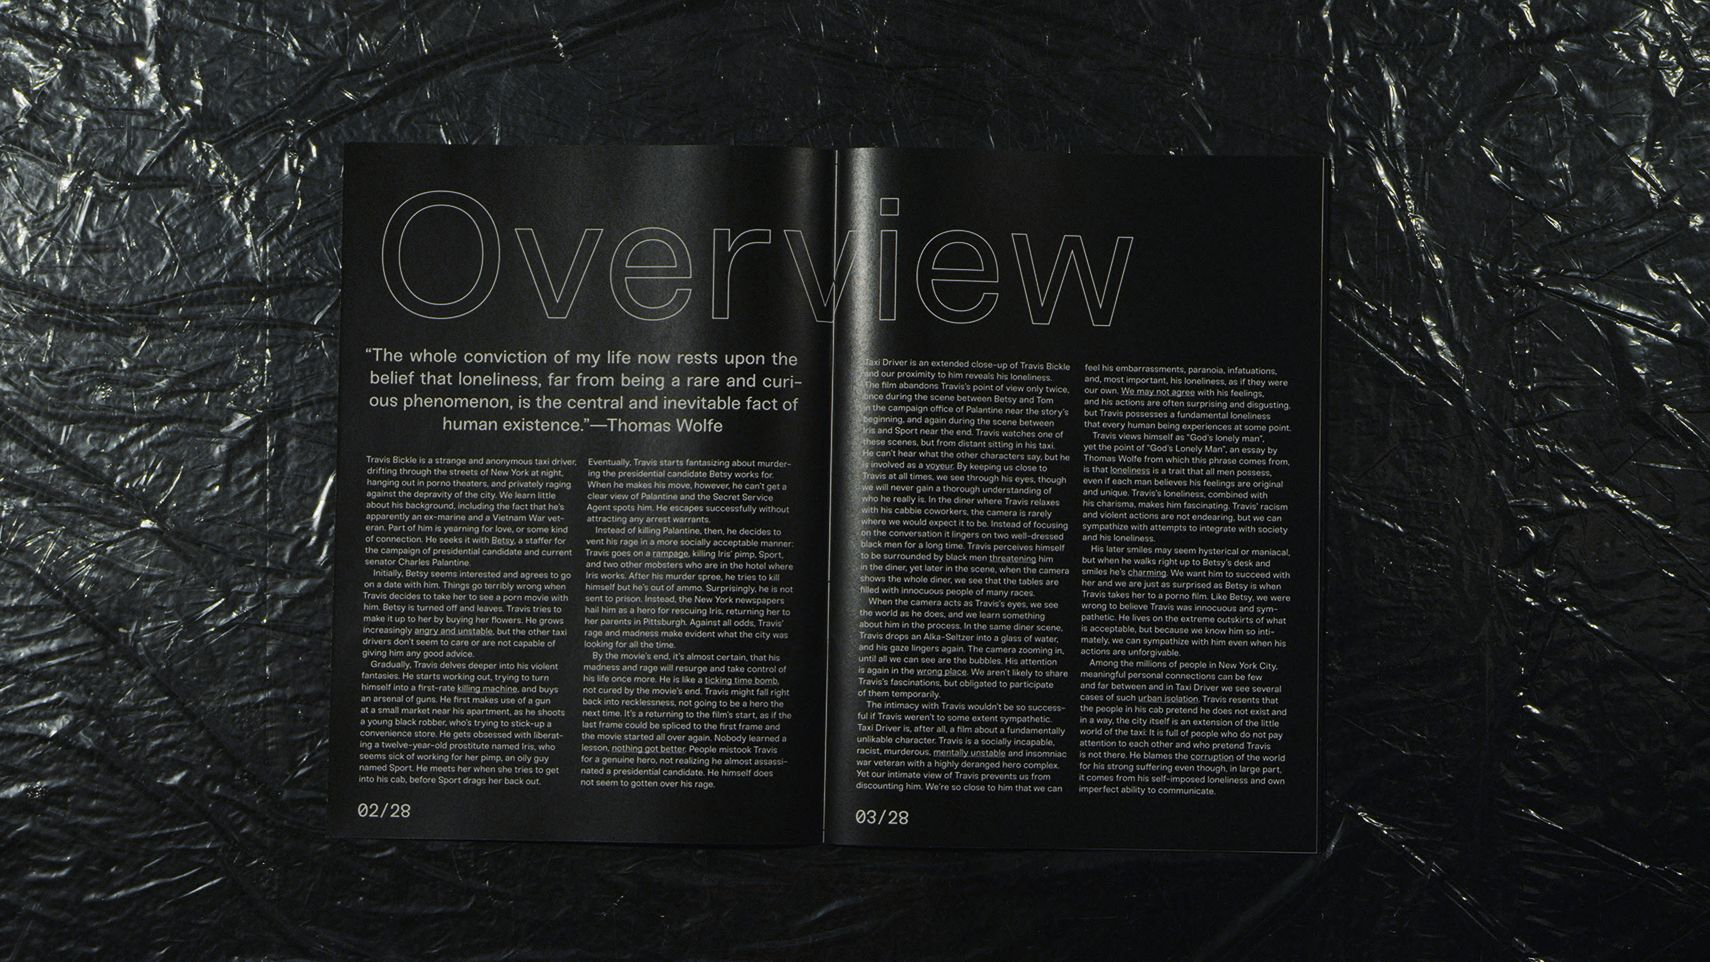 Taxi Driver Magazine Overview